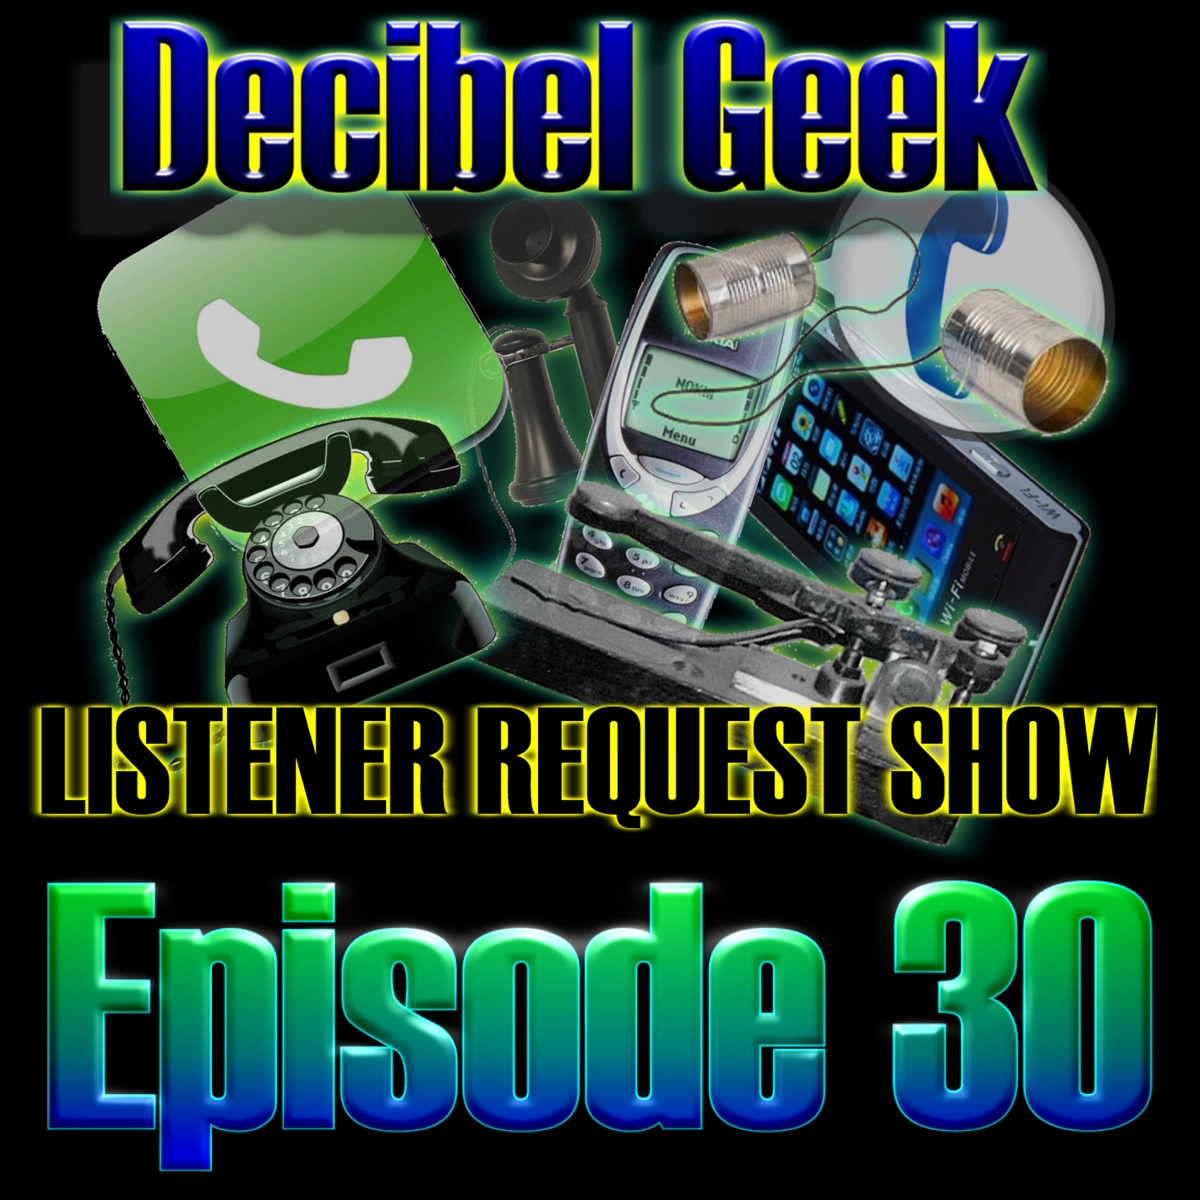 Episode 30 - Listener Request Show